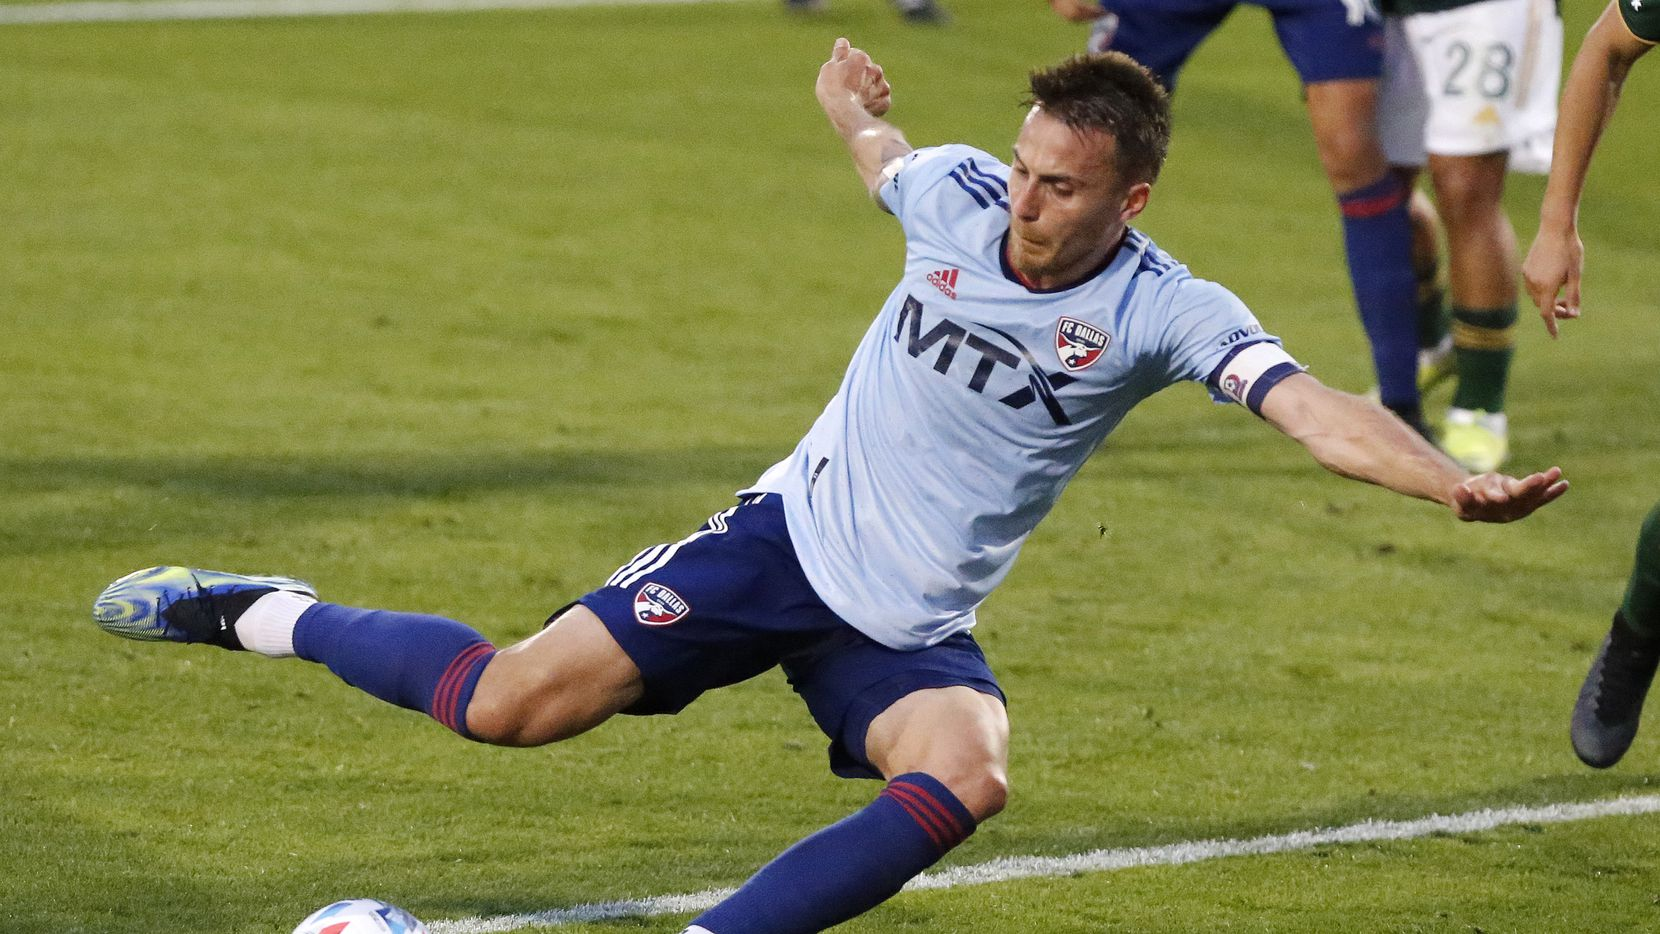 FC Dallas defender Bressan (4) scores the third goal of the game on this kick during the first half as FC Dallas hosted the Portland Timbers at Toyota Stadium in Frisco on Saturday, May 1, 2021.